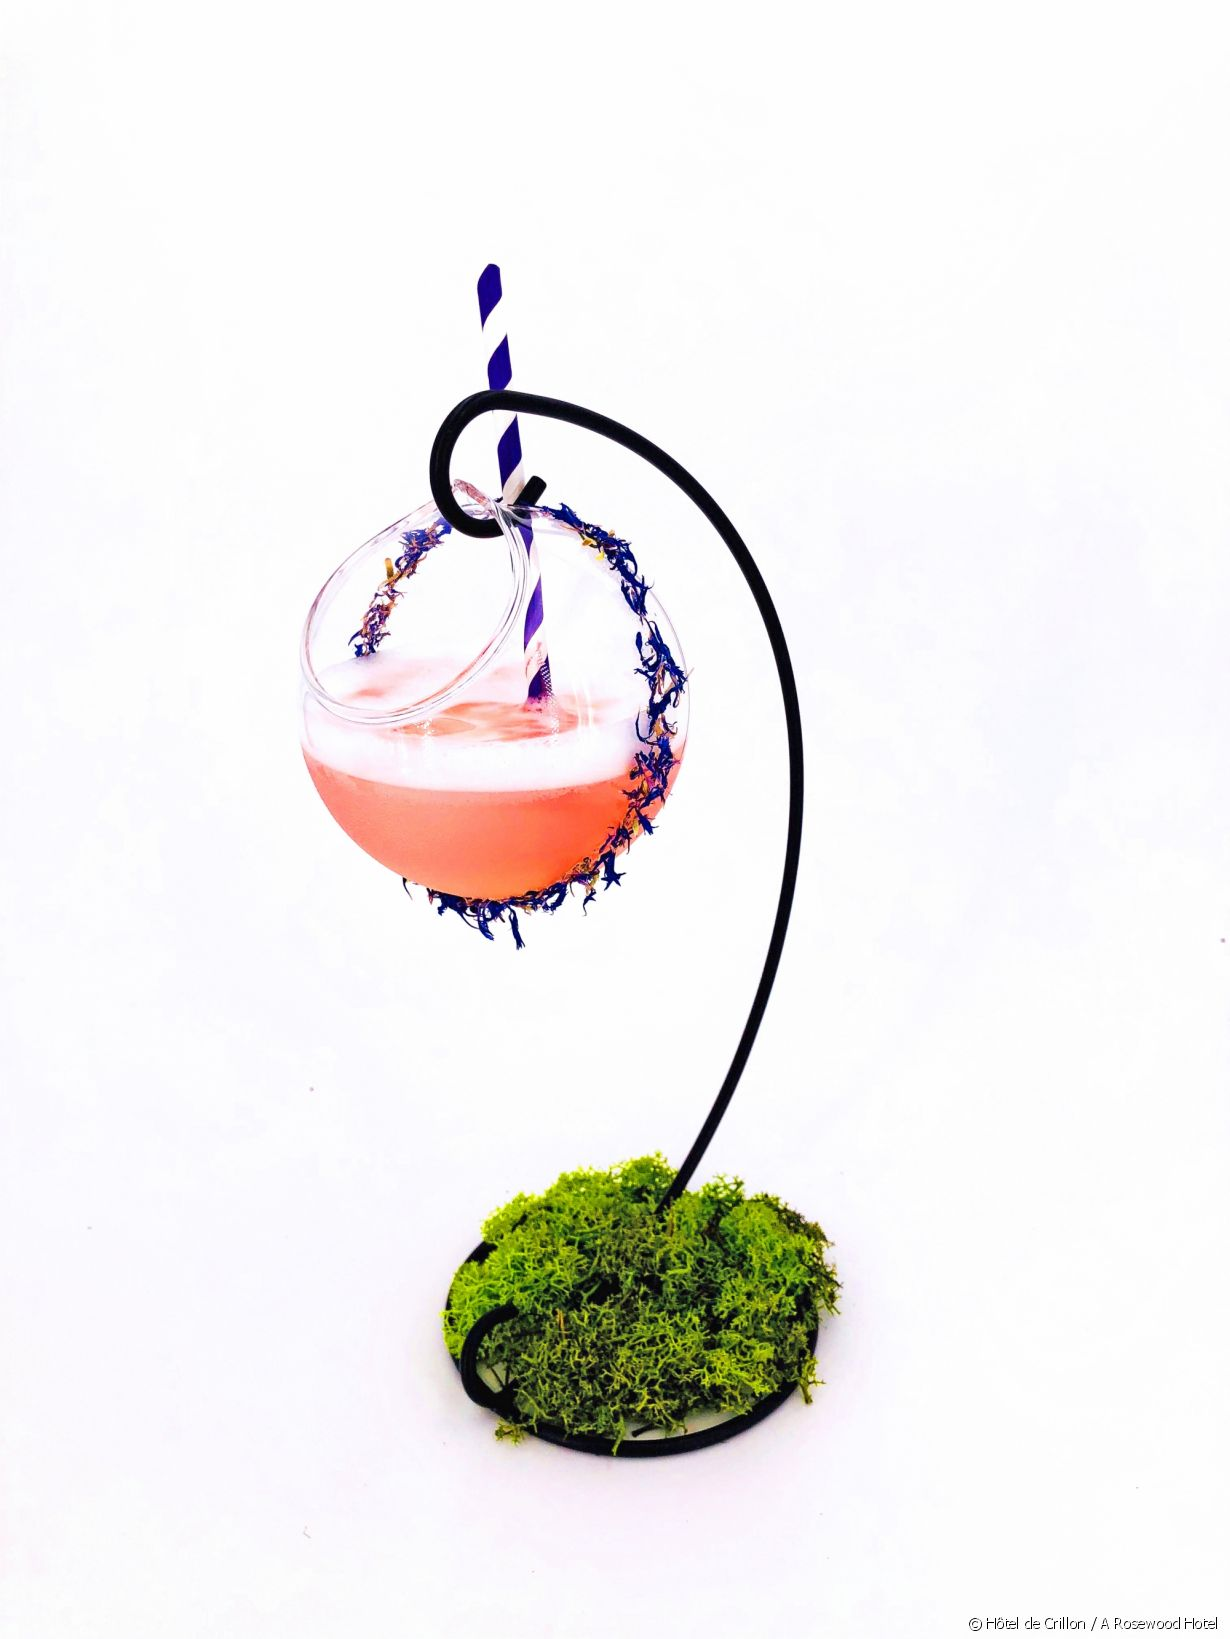 Les 5 cocktails d'été de l'Hôtel de Crillon - Photo 3